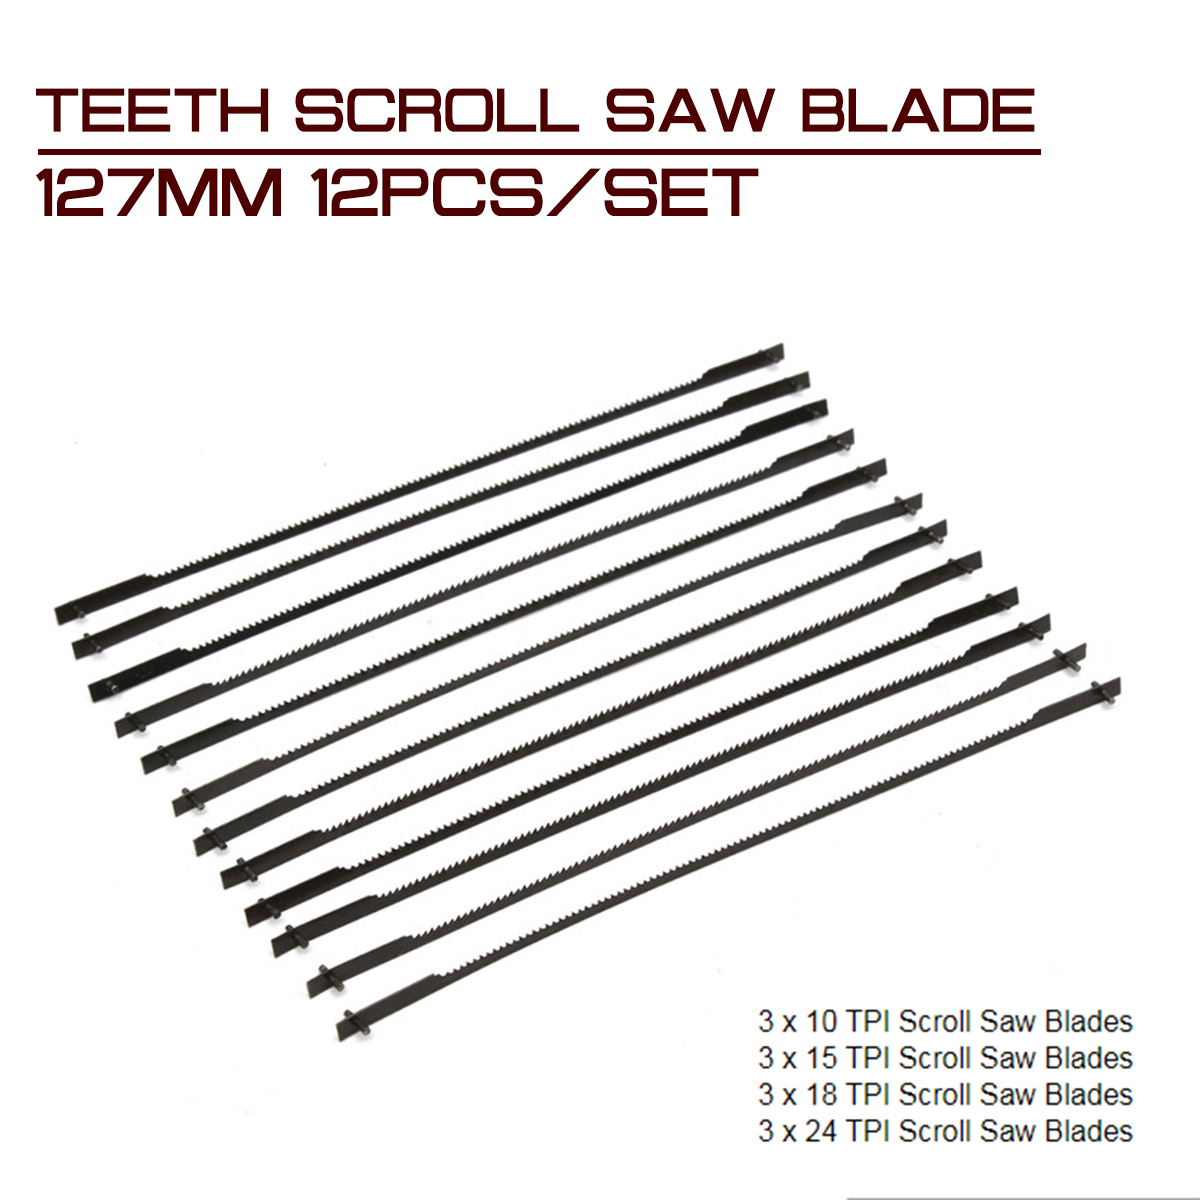 12Pcs/set Teeth Scroll Saw Blade 127mm for Cutting Wood Woodworking Power Tool Accessories Black